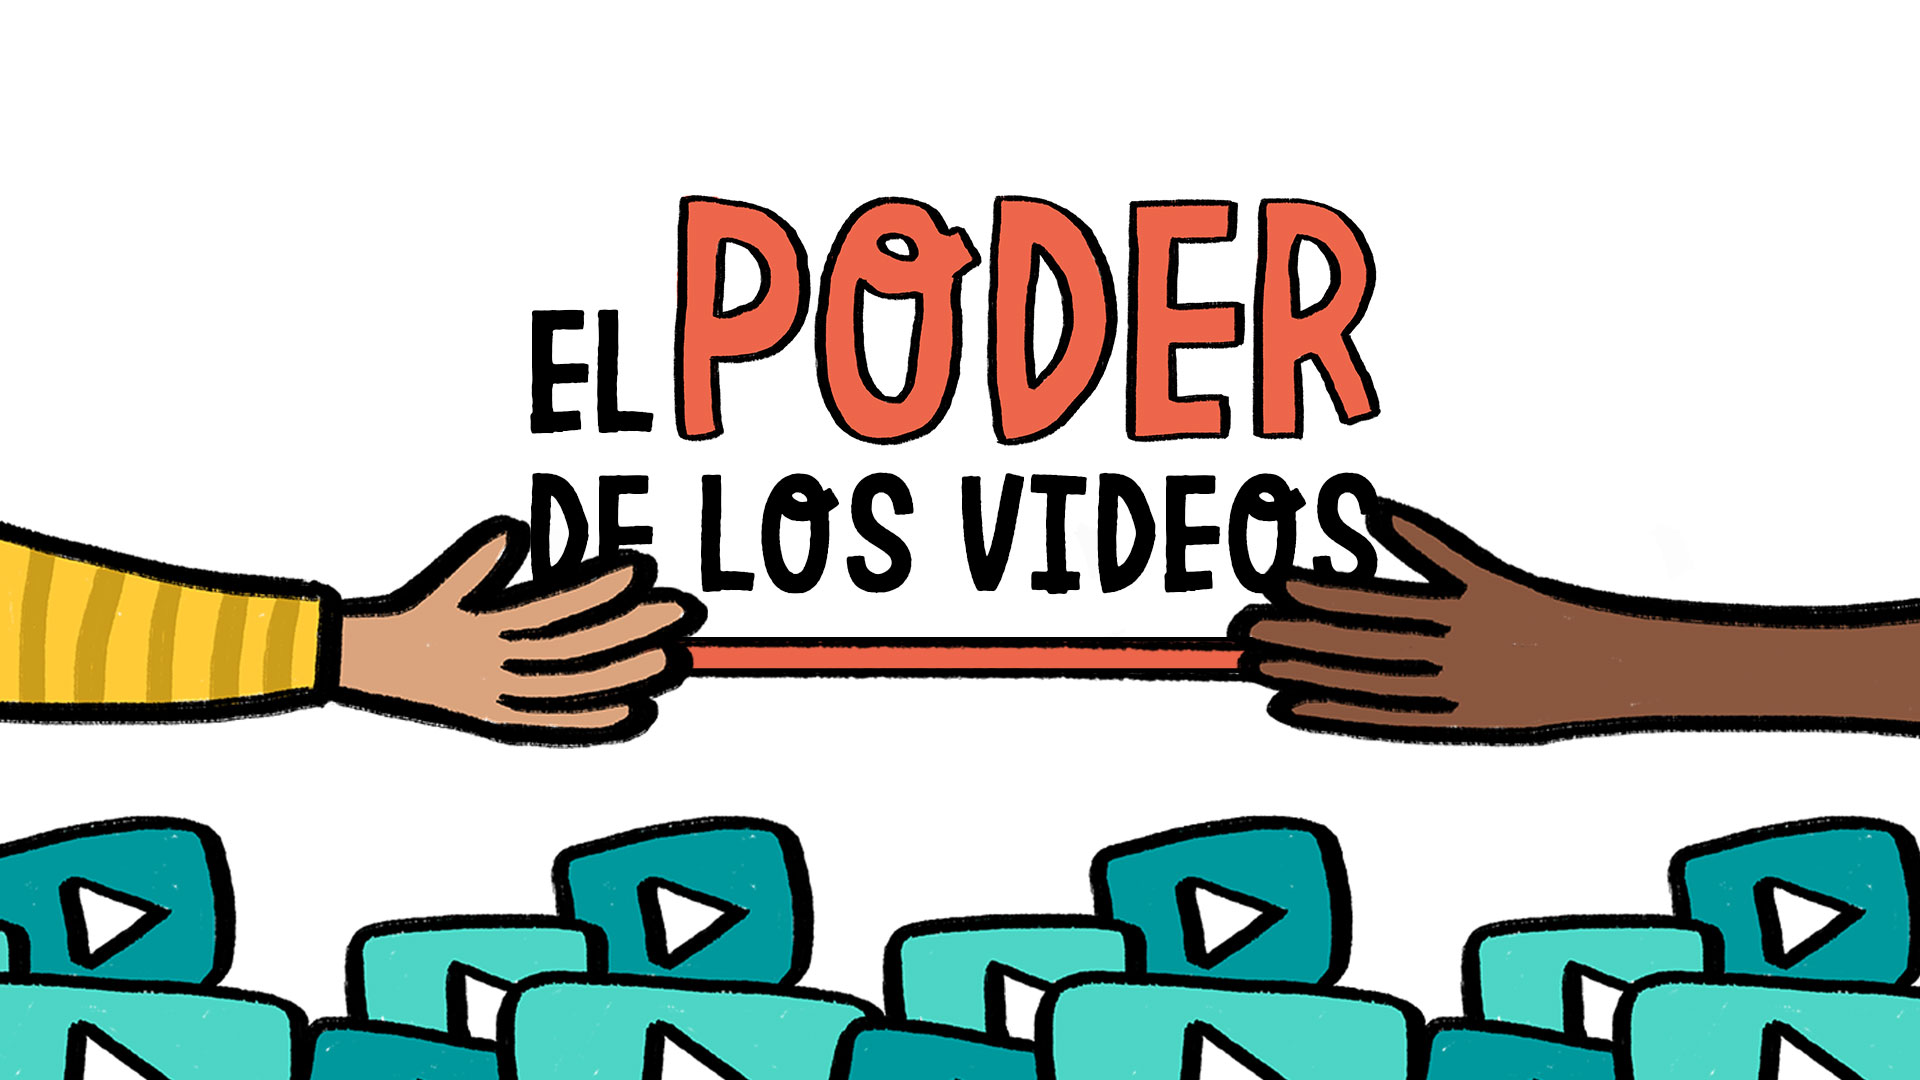 El poder de los videos en la era digital.